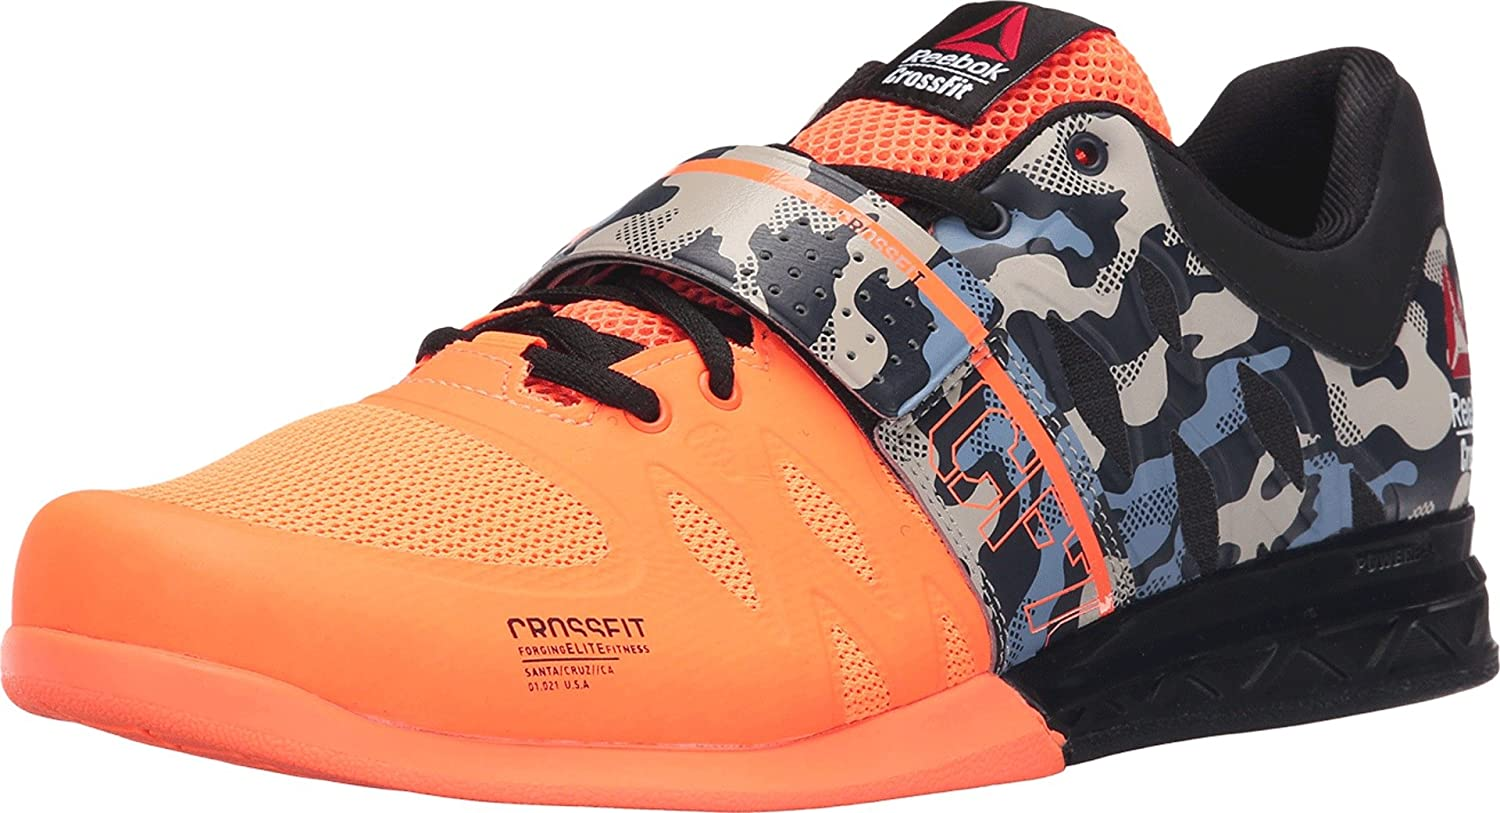 Reebok Men's Crossfit Lifter 2.0 Training Shoe B00O0QNU6Q 11.5 D(M) US|Electric Peach